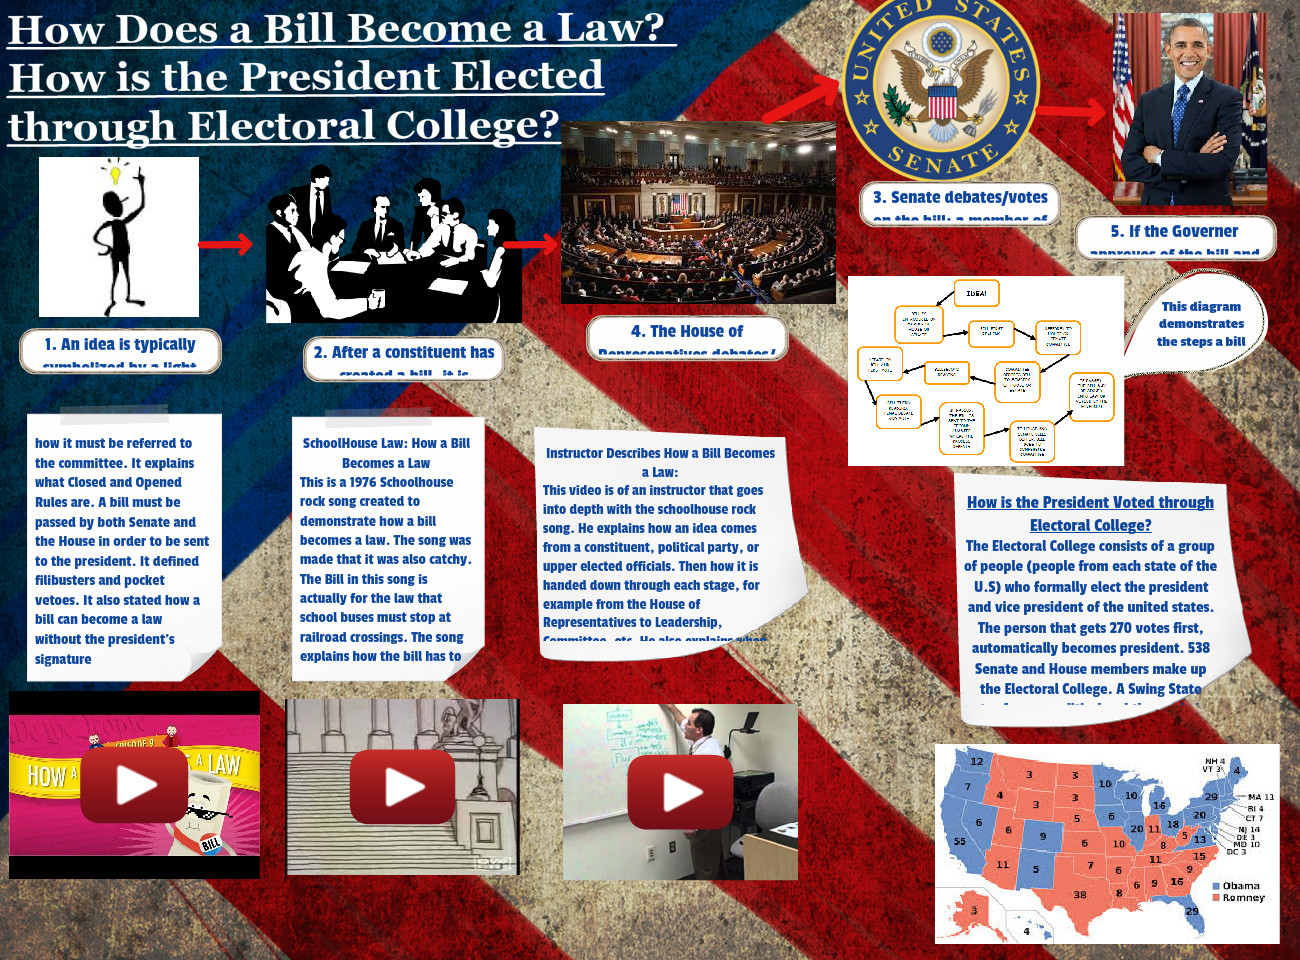 [2015] Yareli Reyes: How Does a Bill Become a Law